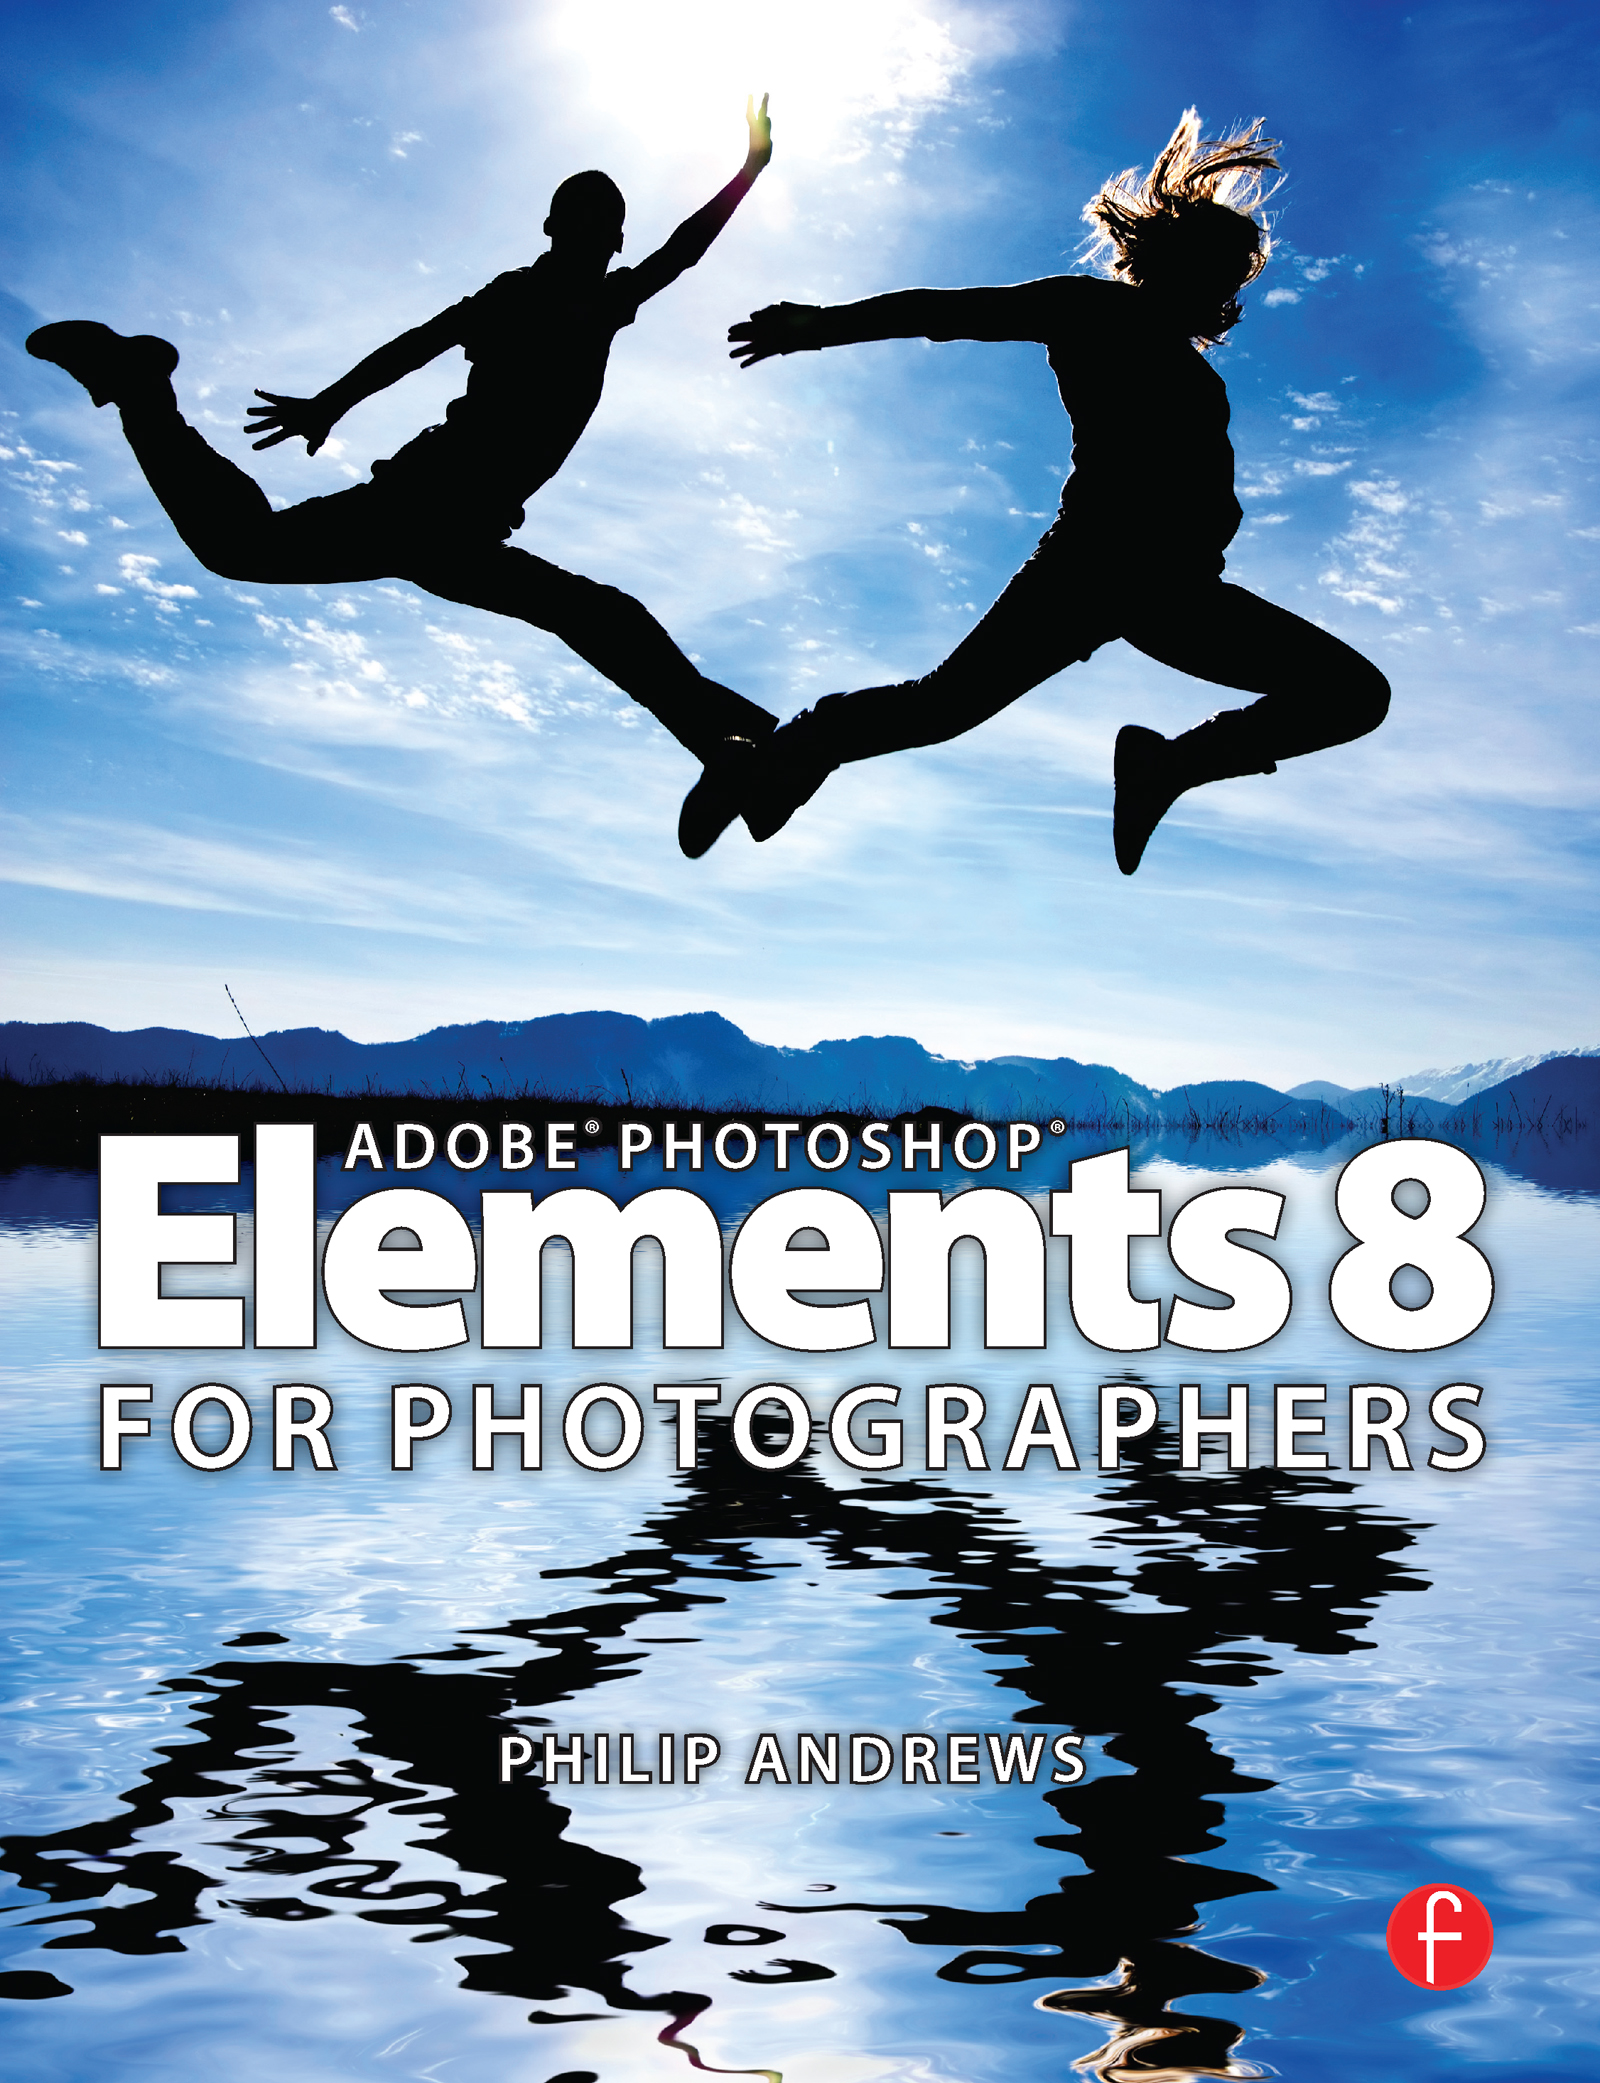 Adobe Photoshop Elements 8 for Photographers book cover